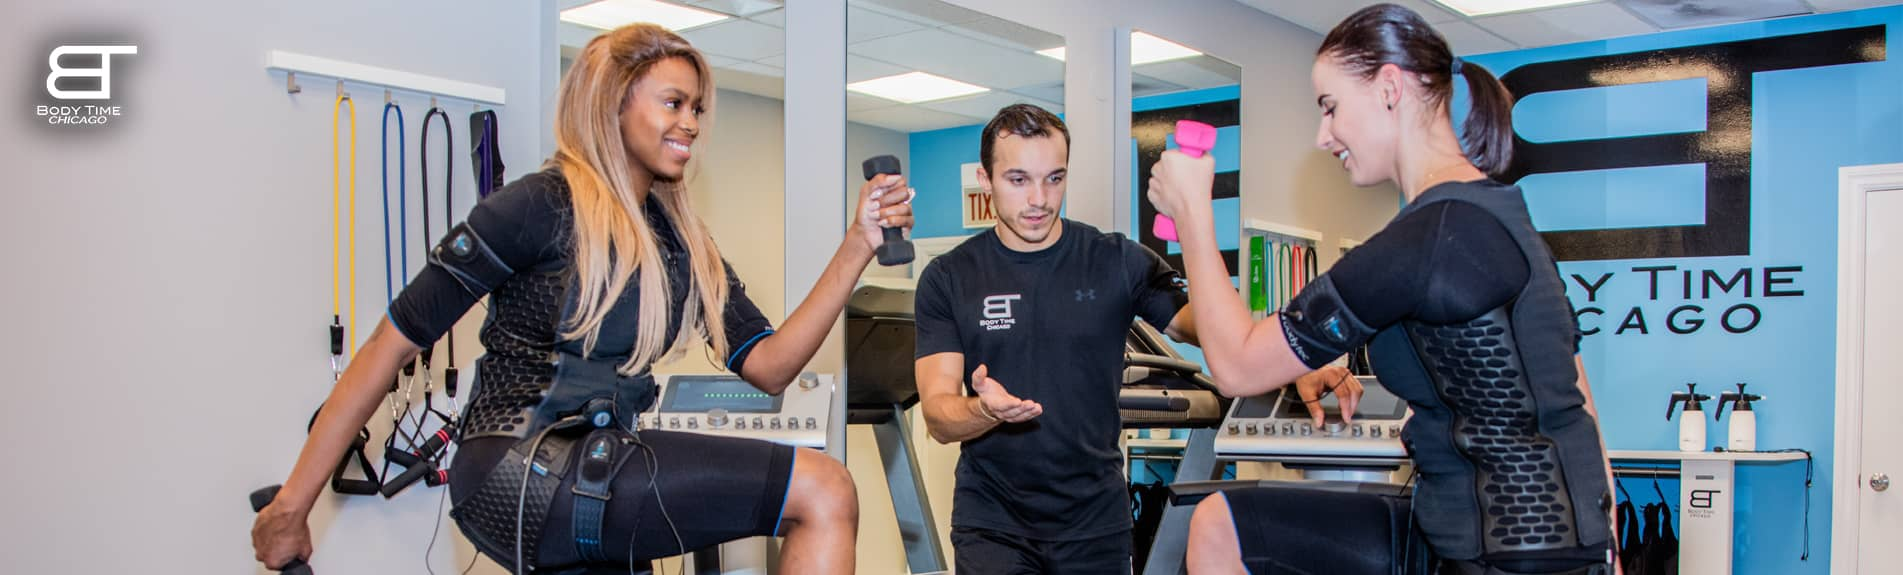 Personal Fitness Training with EMS Workout -Body Time Chicago